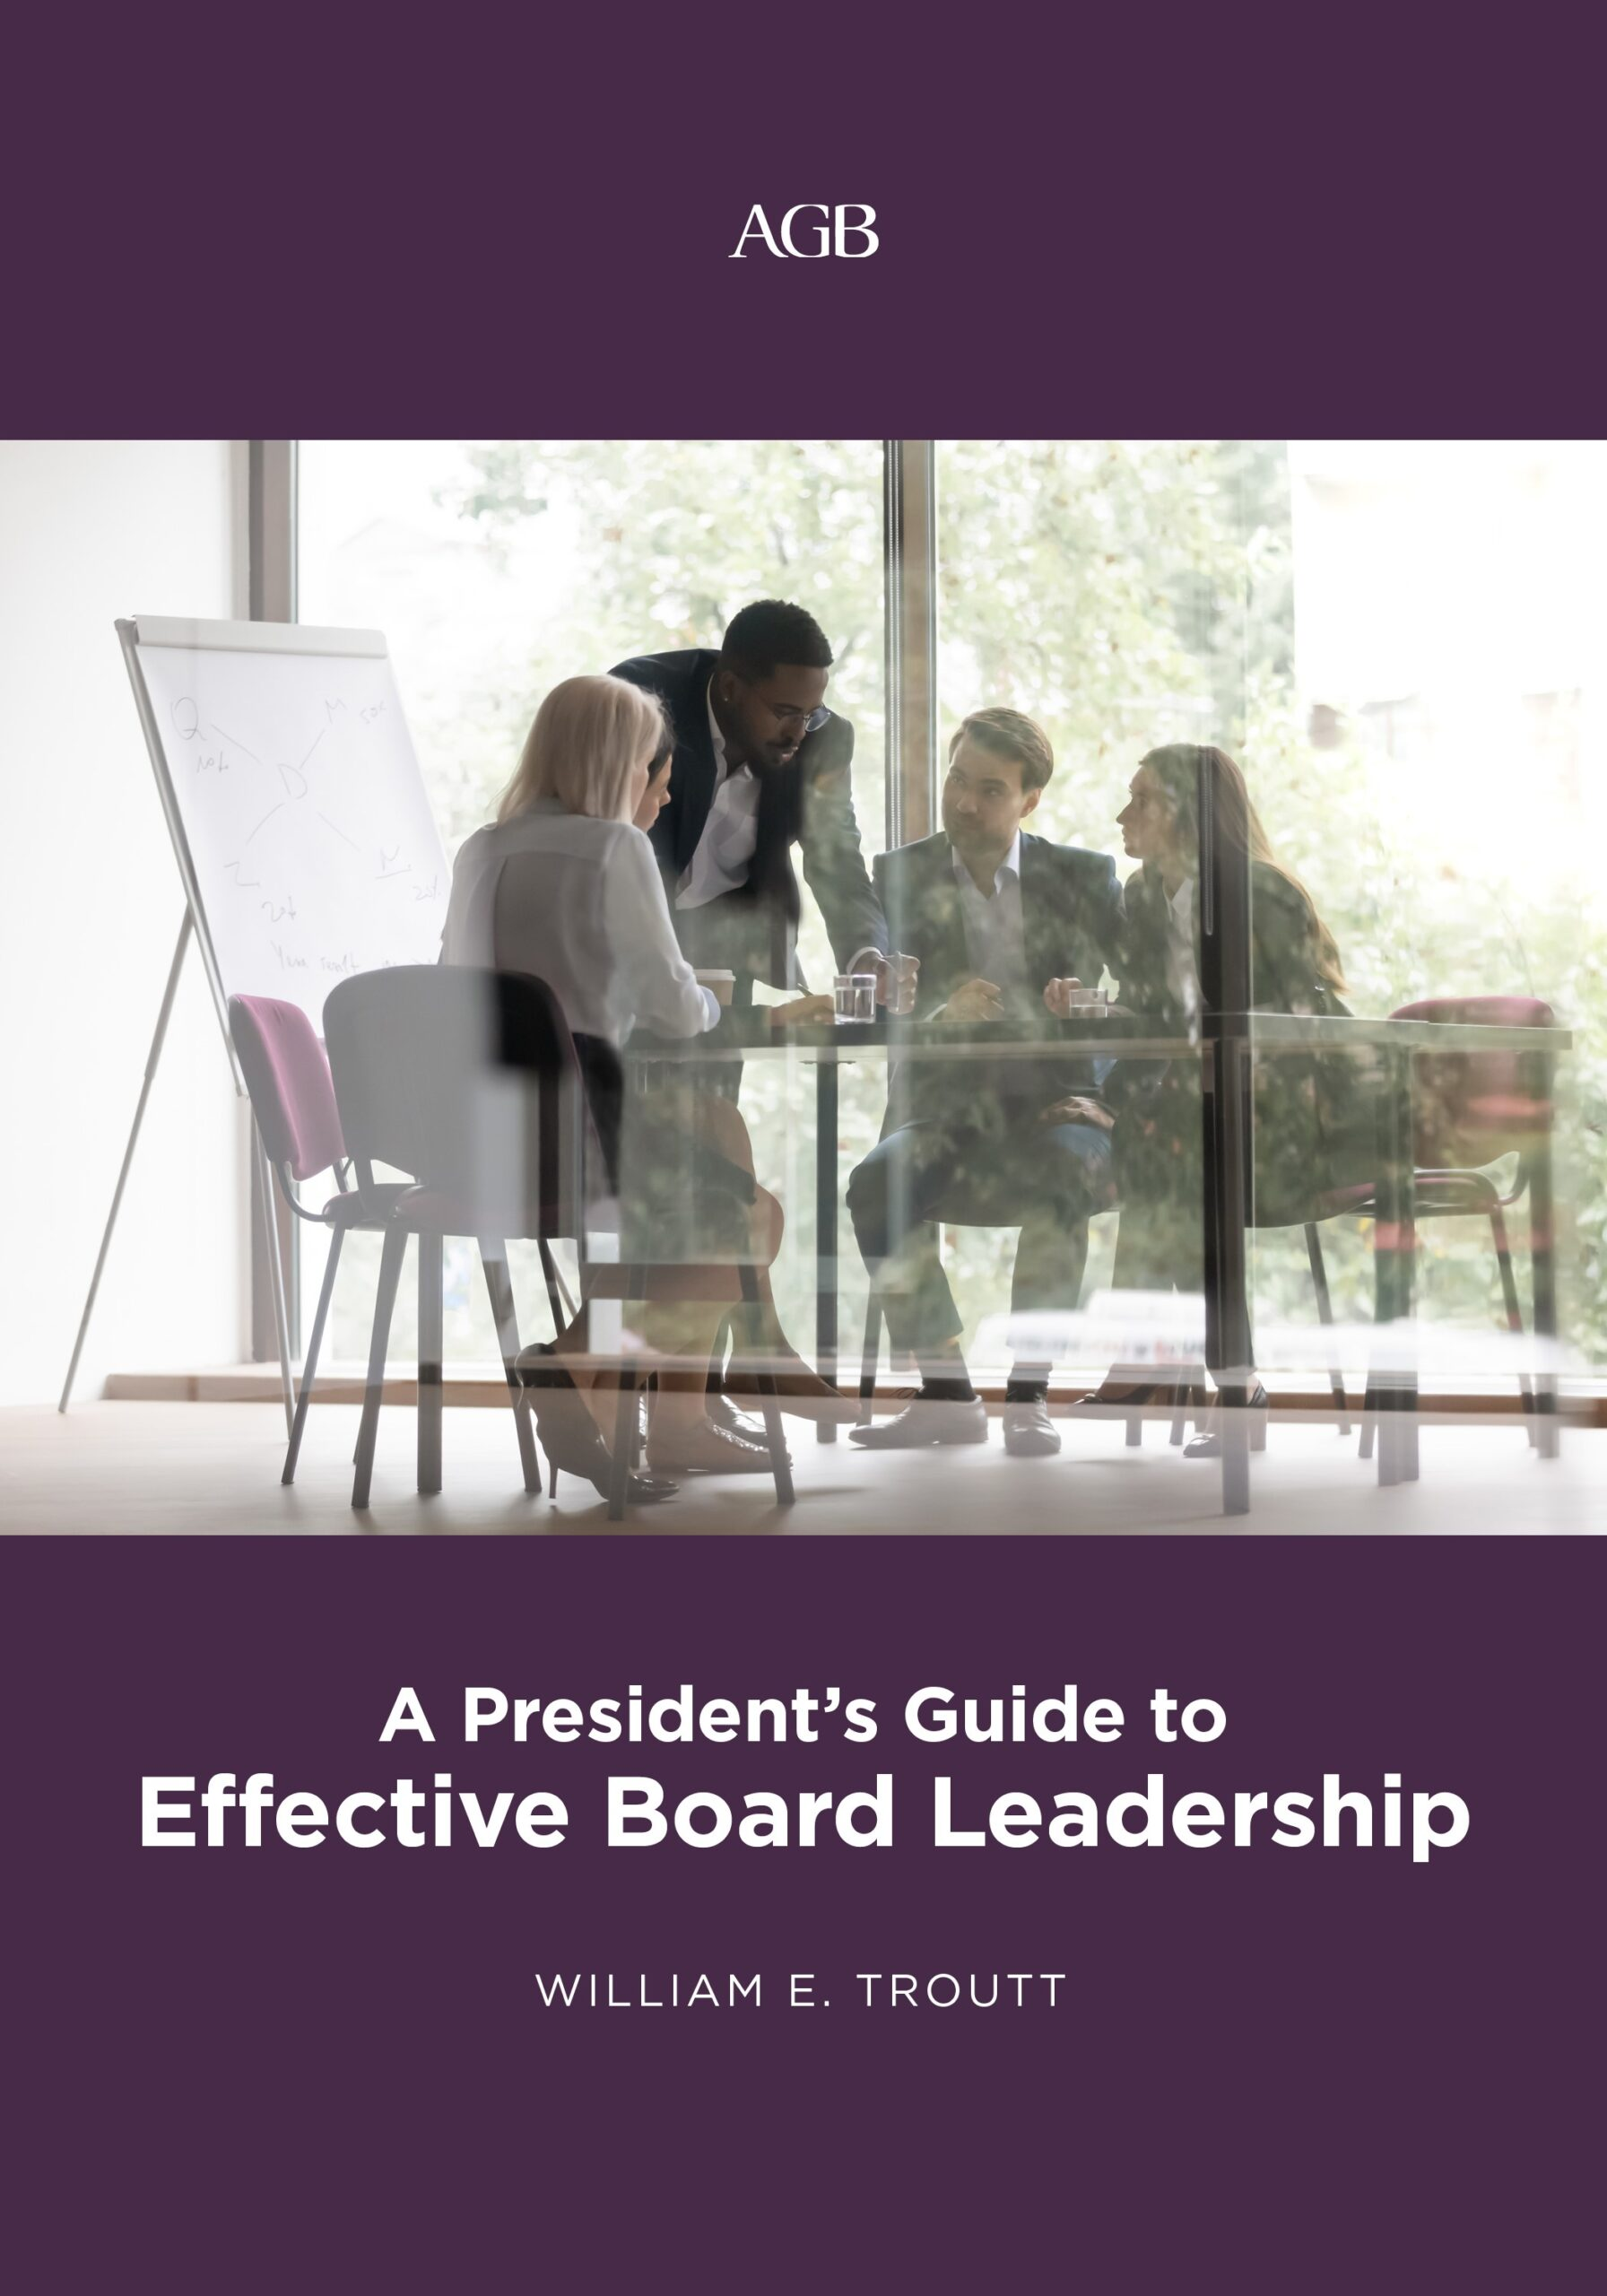 A President's Guide to Effective Board Leadership